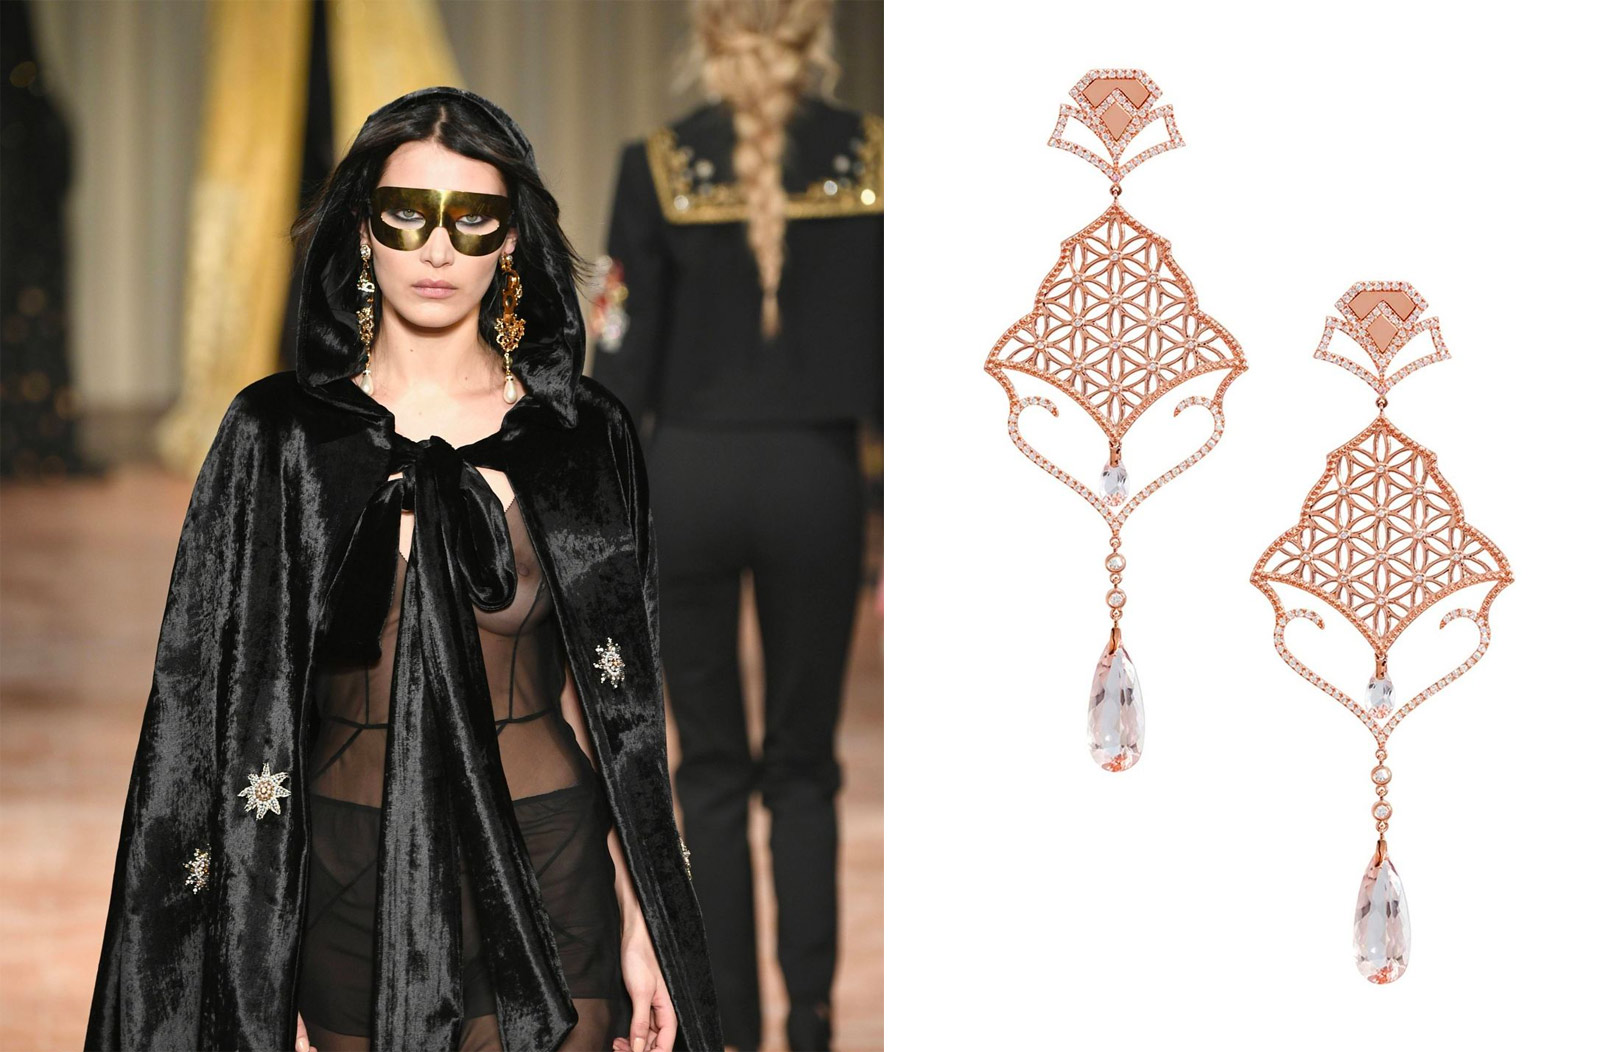 Alberta Ferretti Fall/Winter 2018 and Dionea Orcini earrings in rose gold